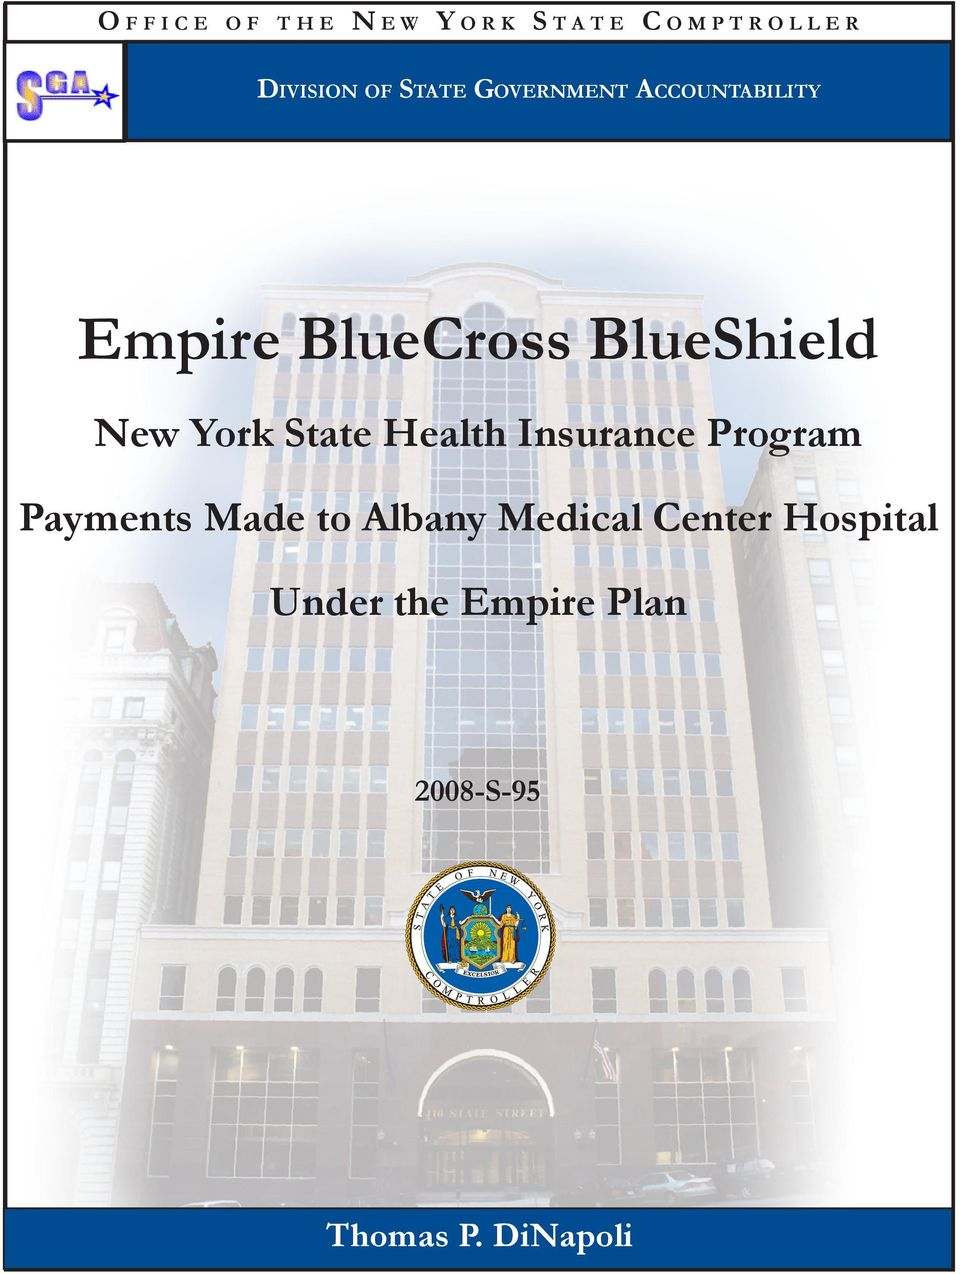 BlueShield New York State Health Insurance Program Payments Made to